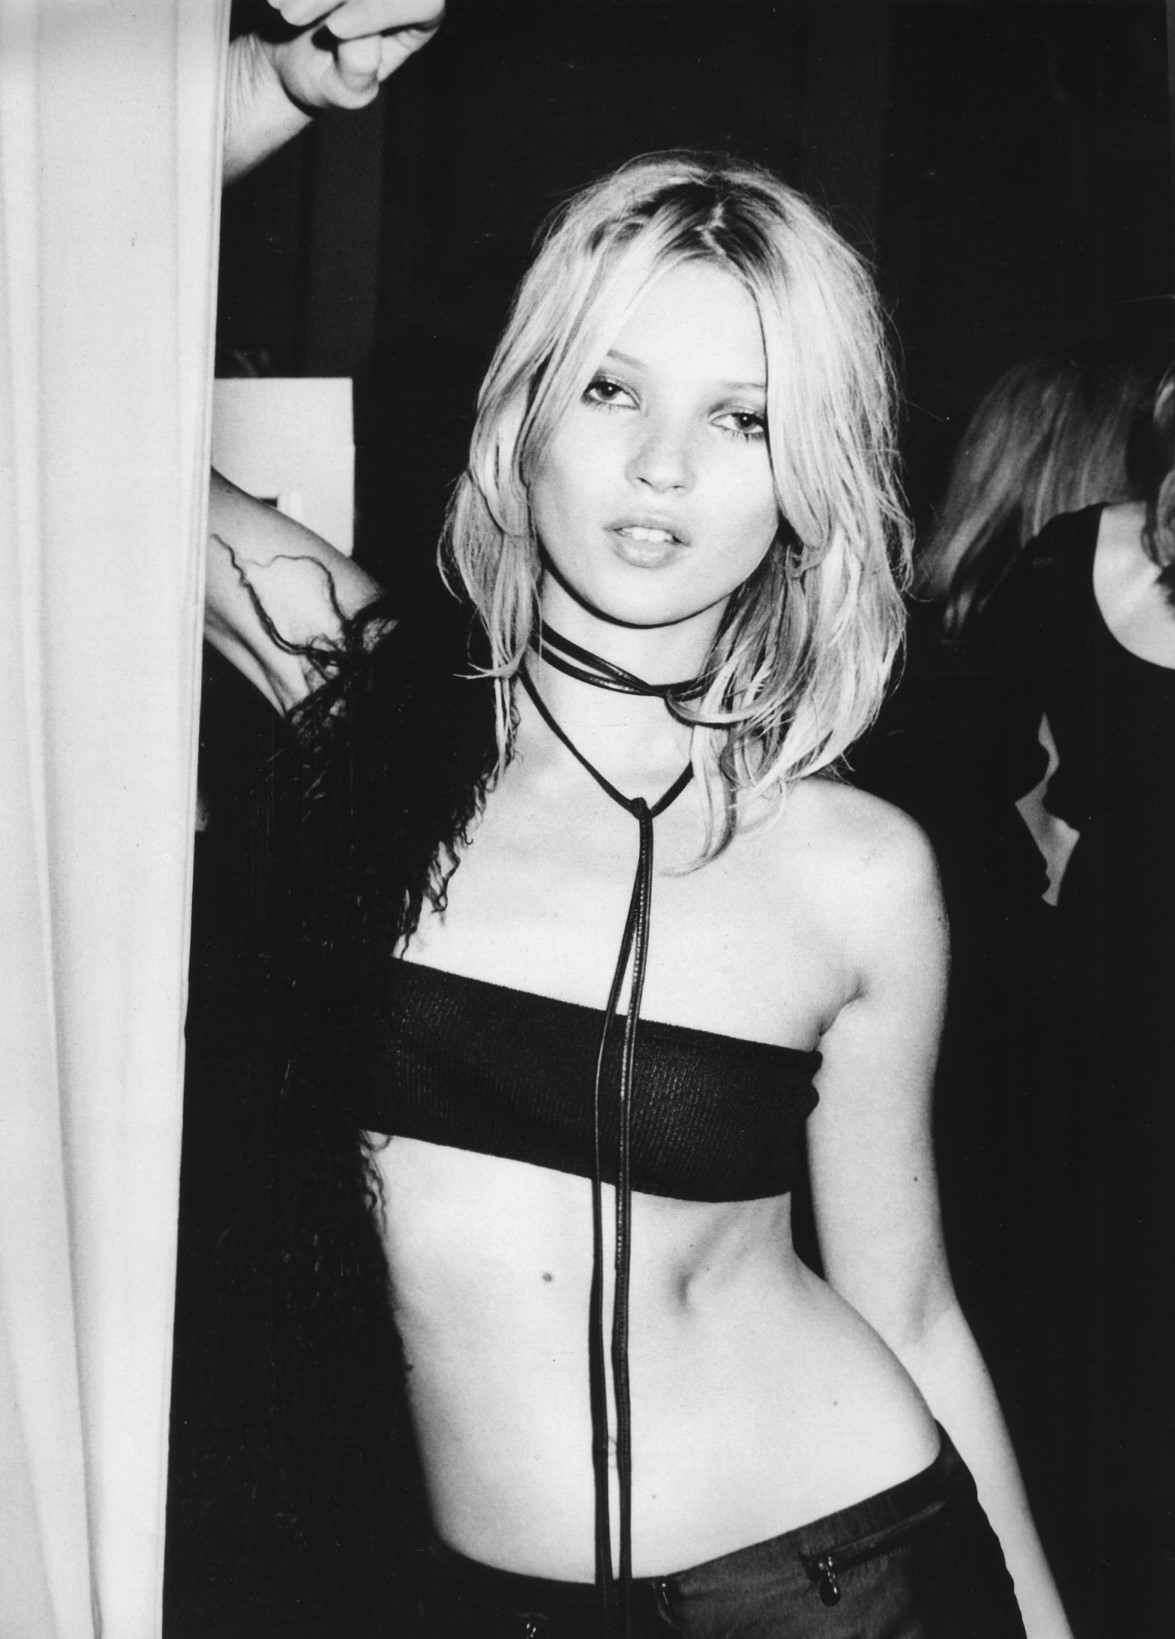 kate moss photography roxanne lowit 1995 v magazine september october 2001